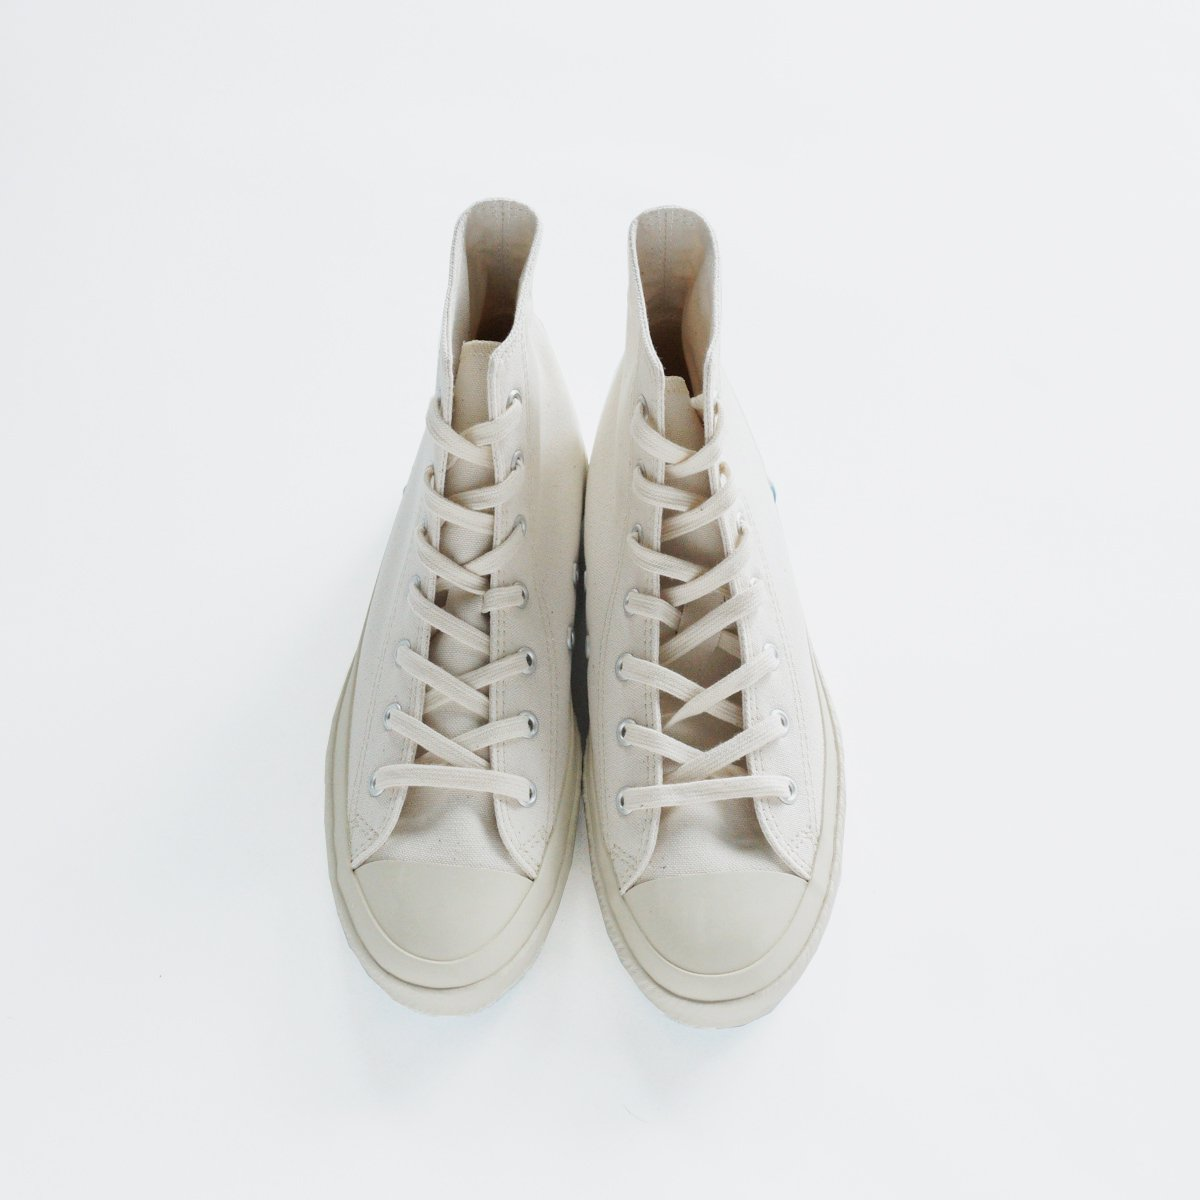 SHOES LIKE POTTERY CANVAS SNEAKER HI (WHITE)3